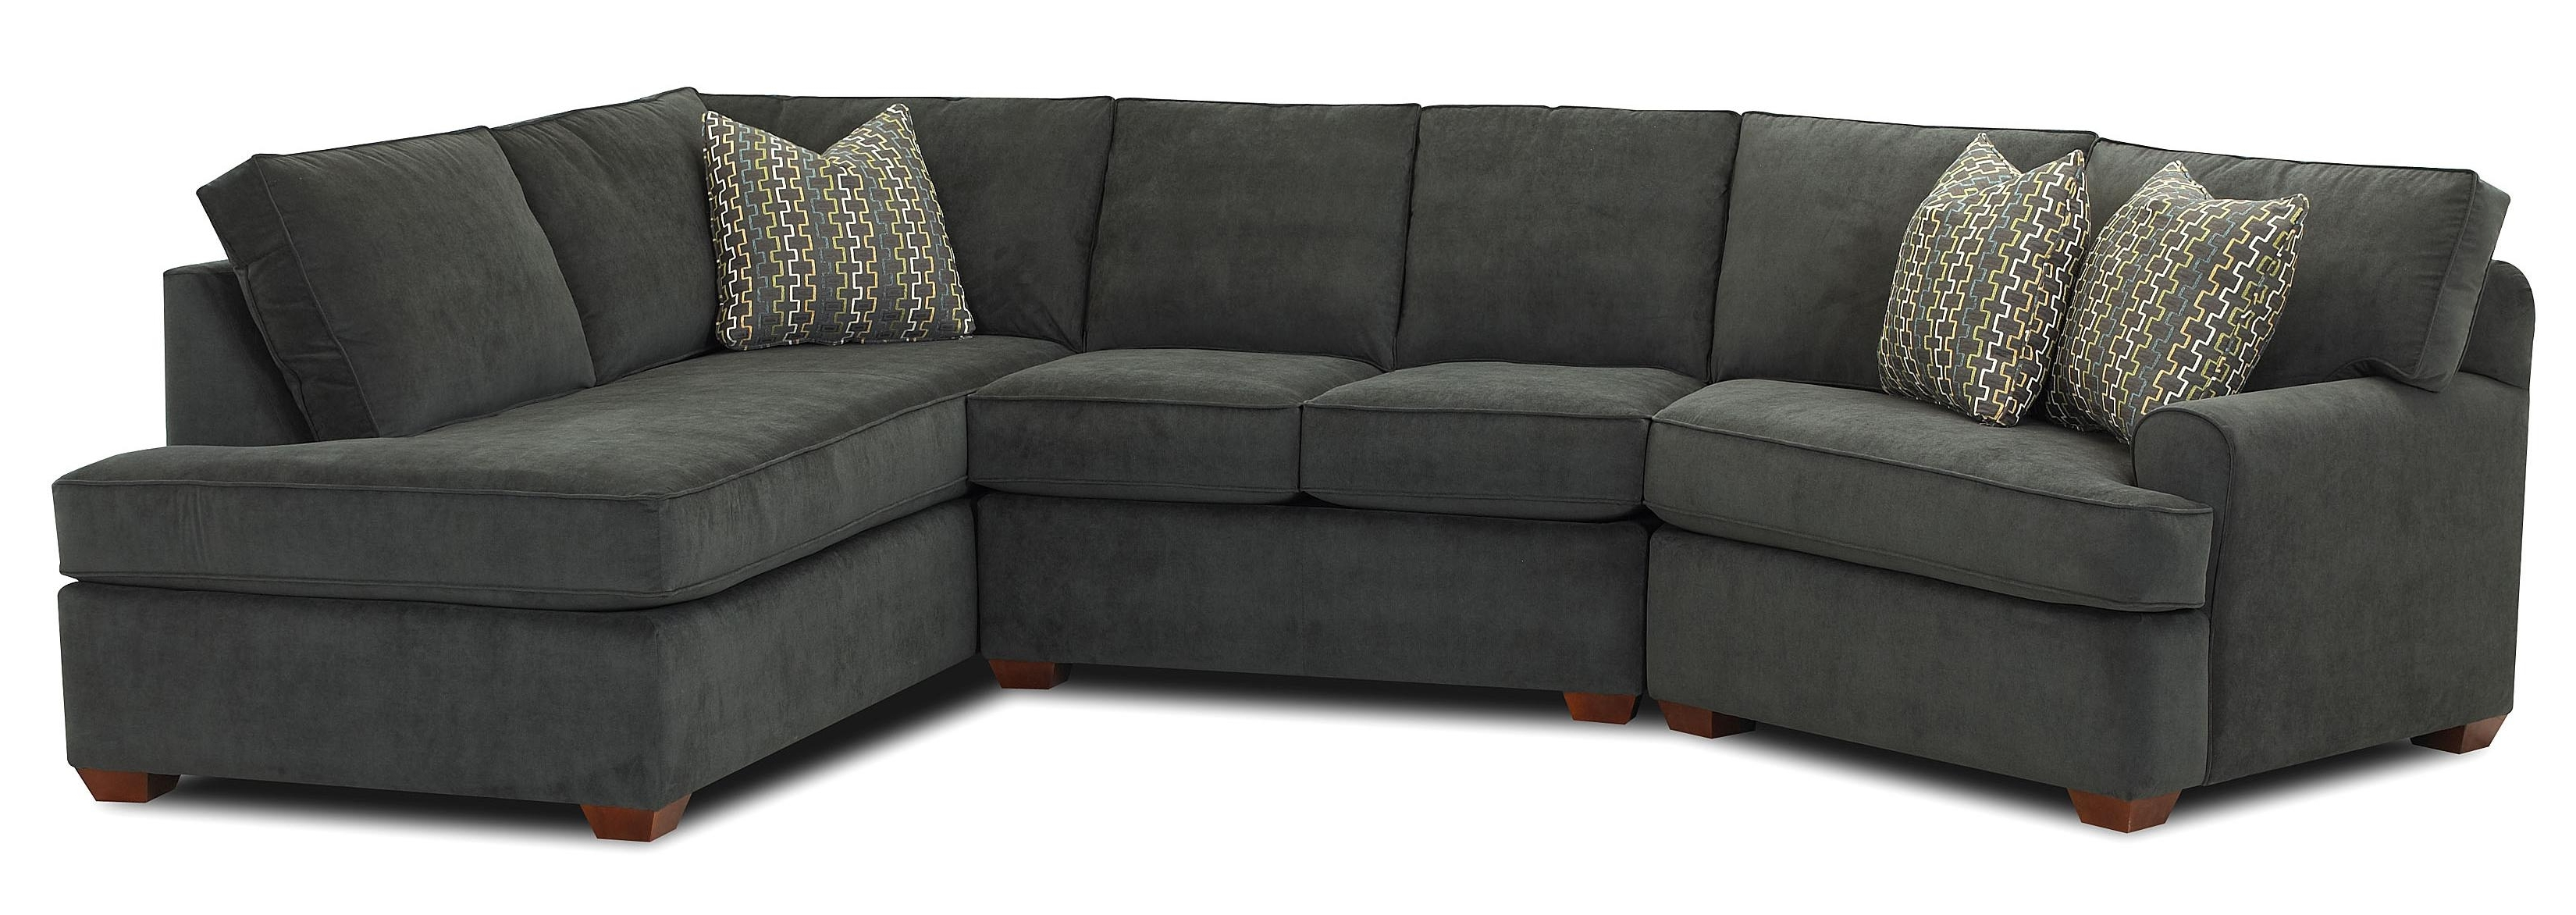 Best Ideas Of Sectionals With Chaise Lounge Also Living Room Grey In Most Popular Charcoal Sectionals With Chaise (View 3 of 15)